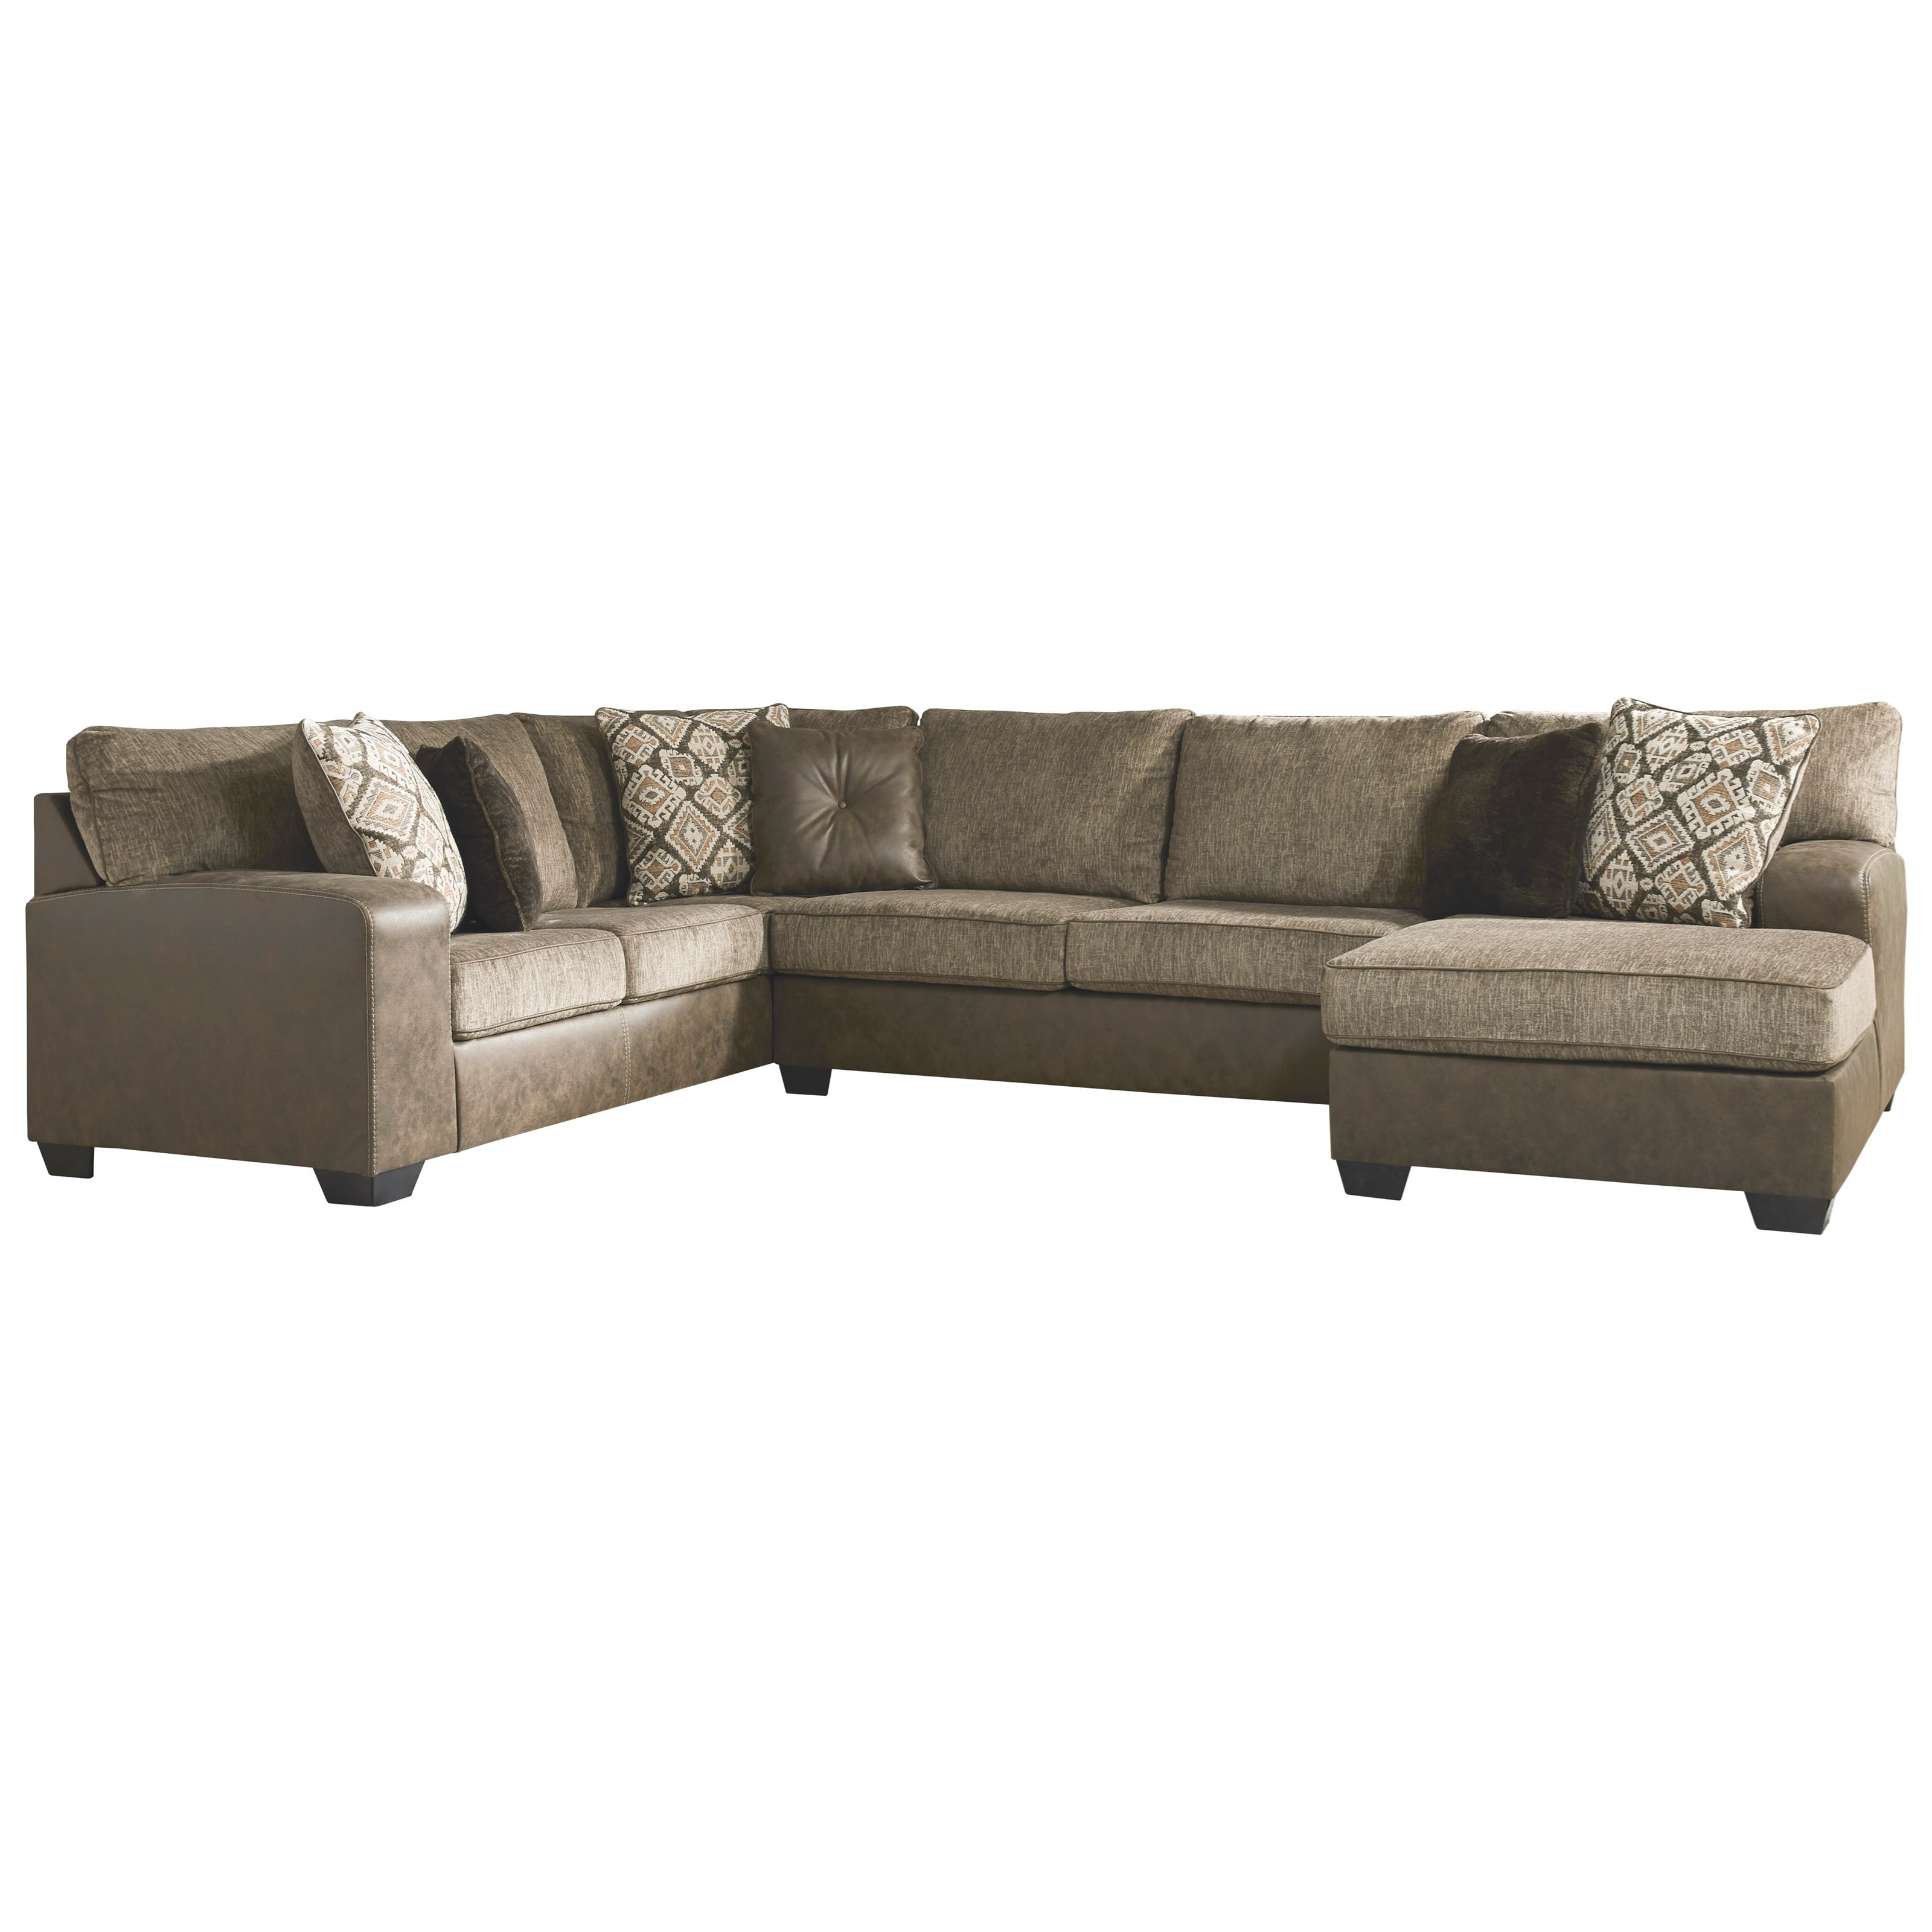 Abalone 3-Piece Sectional by Benchcraft at Beds N Stuff